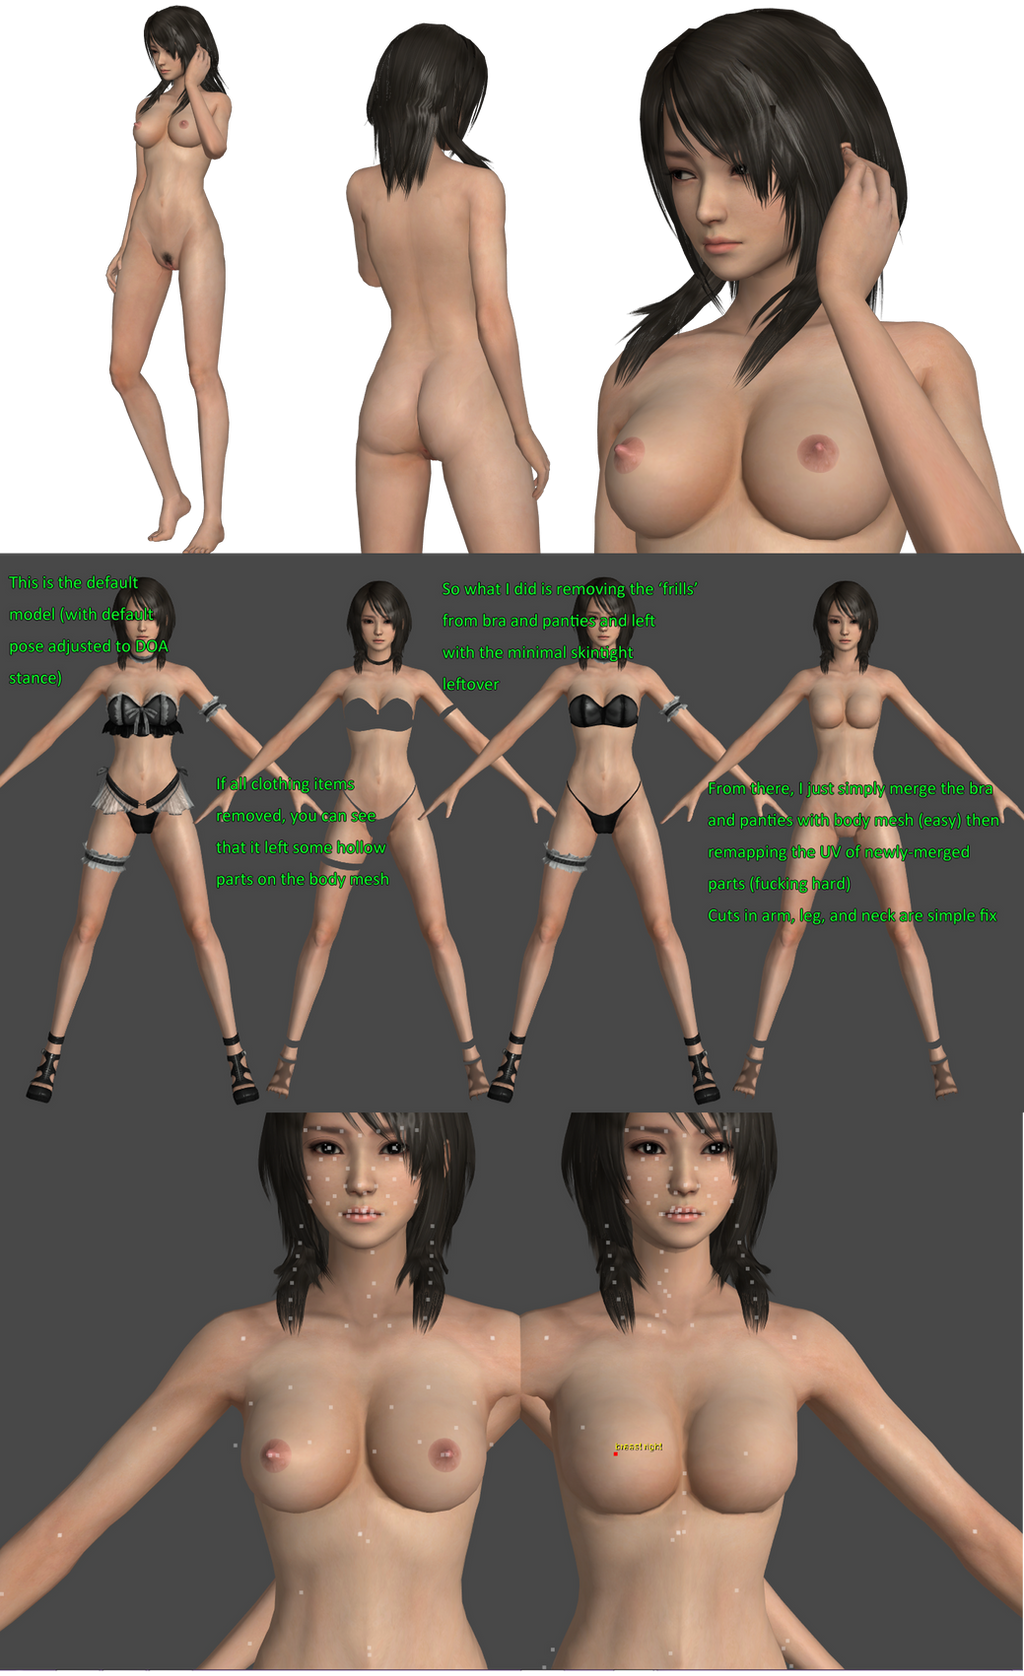 Frame by frame nude